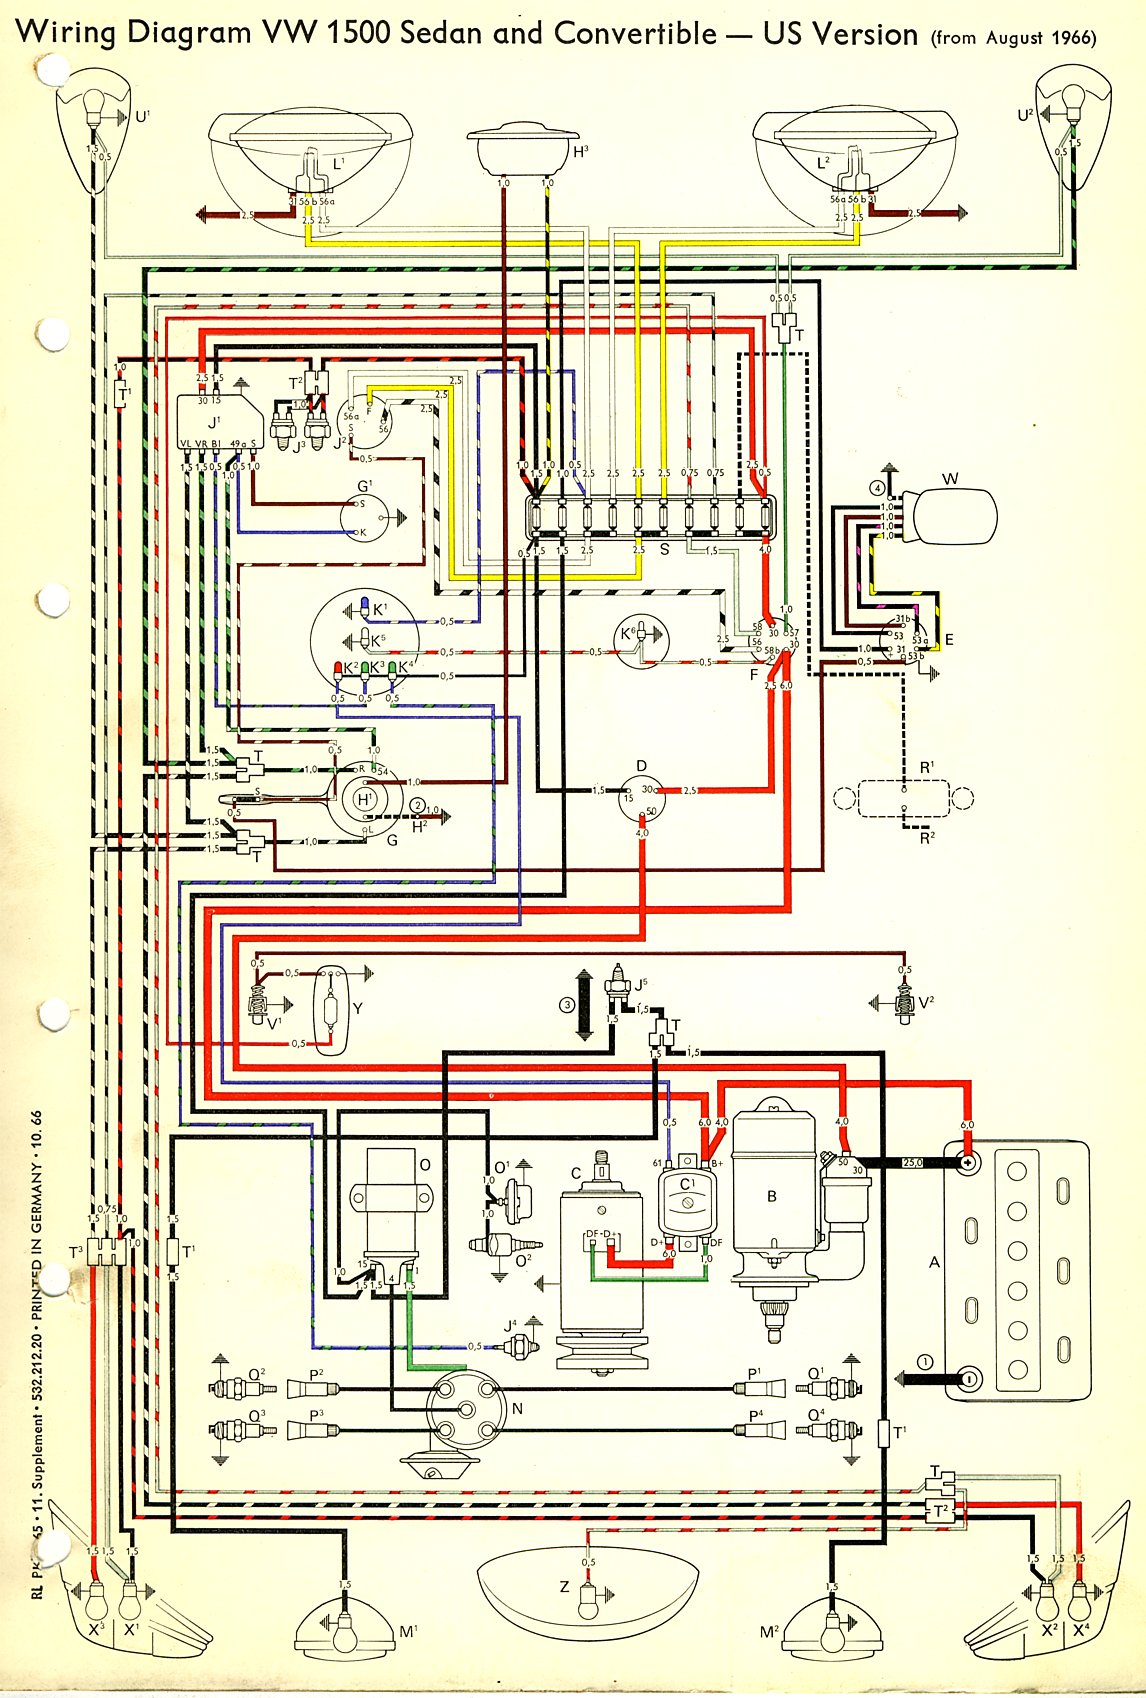 1974 vw super beetle wiring diagram 10 5 artatec automobile de \u2022volkswagen beetle electrical diagram schematic wiring diagram rh 3 5 www dualer student de 74 super beetle wiring diagram 1974 vw super beetle fuse box